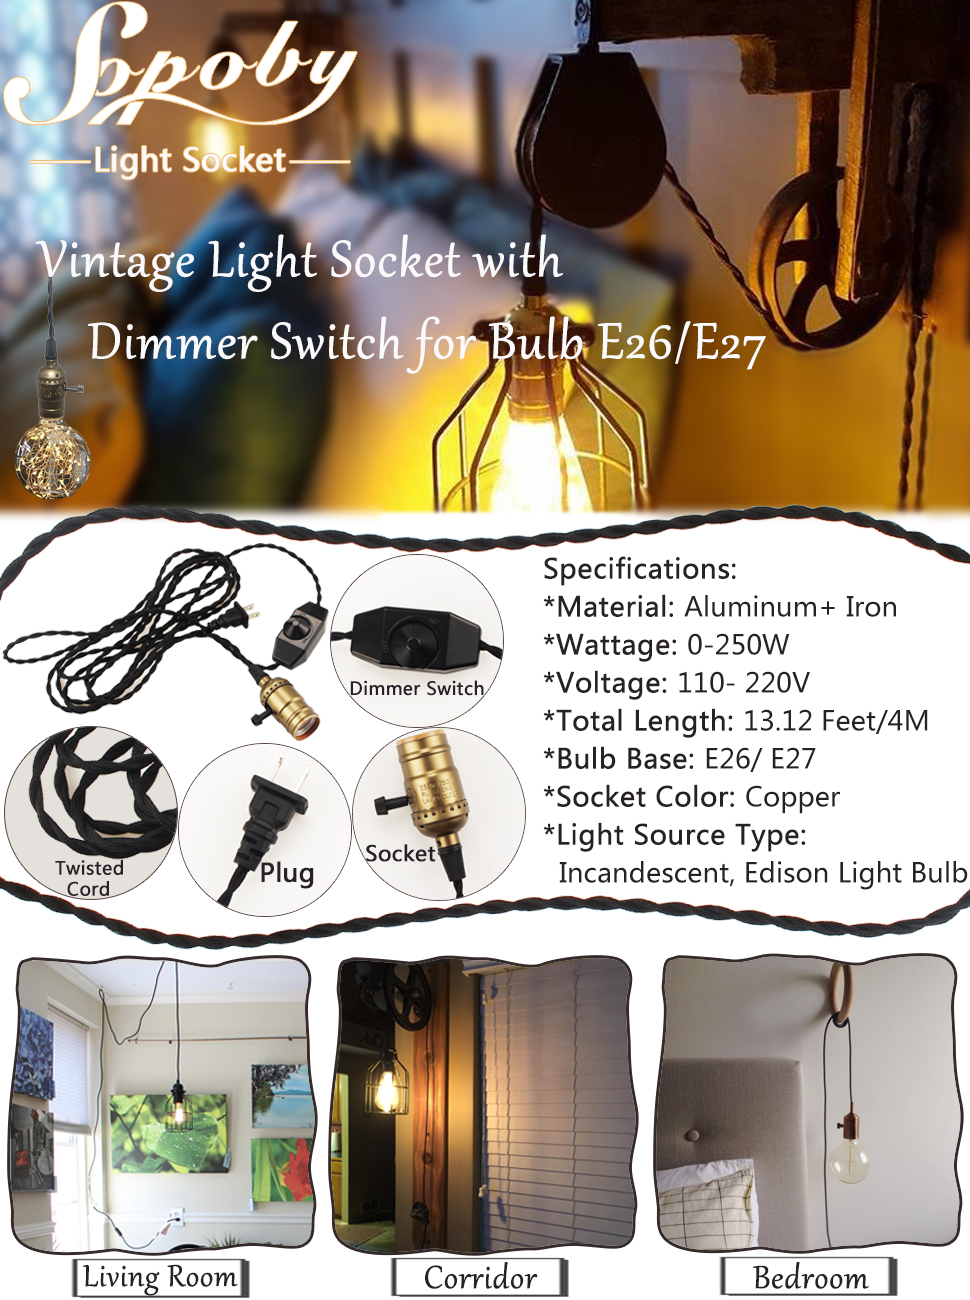 Details about e27 type plug in hanging pendant light fixture lamp bulb - Vintage Light Socket With Dimmer Switch For Bulbs Edison E26 E27 Black Twisted Cord